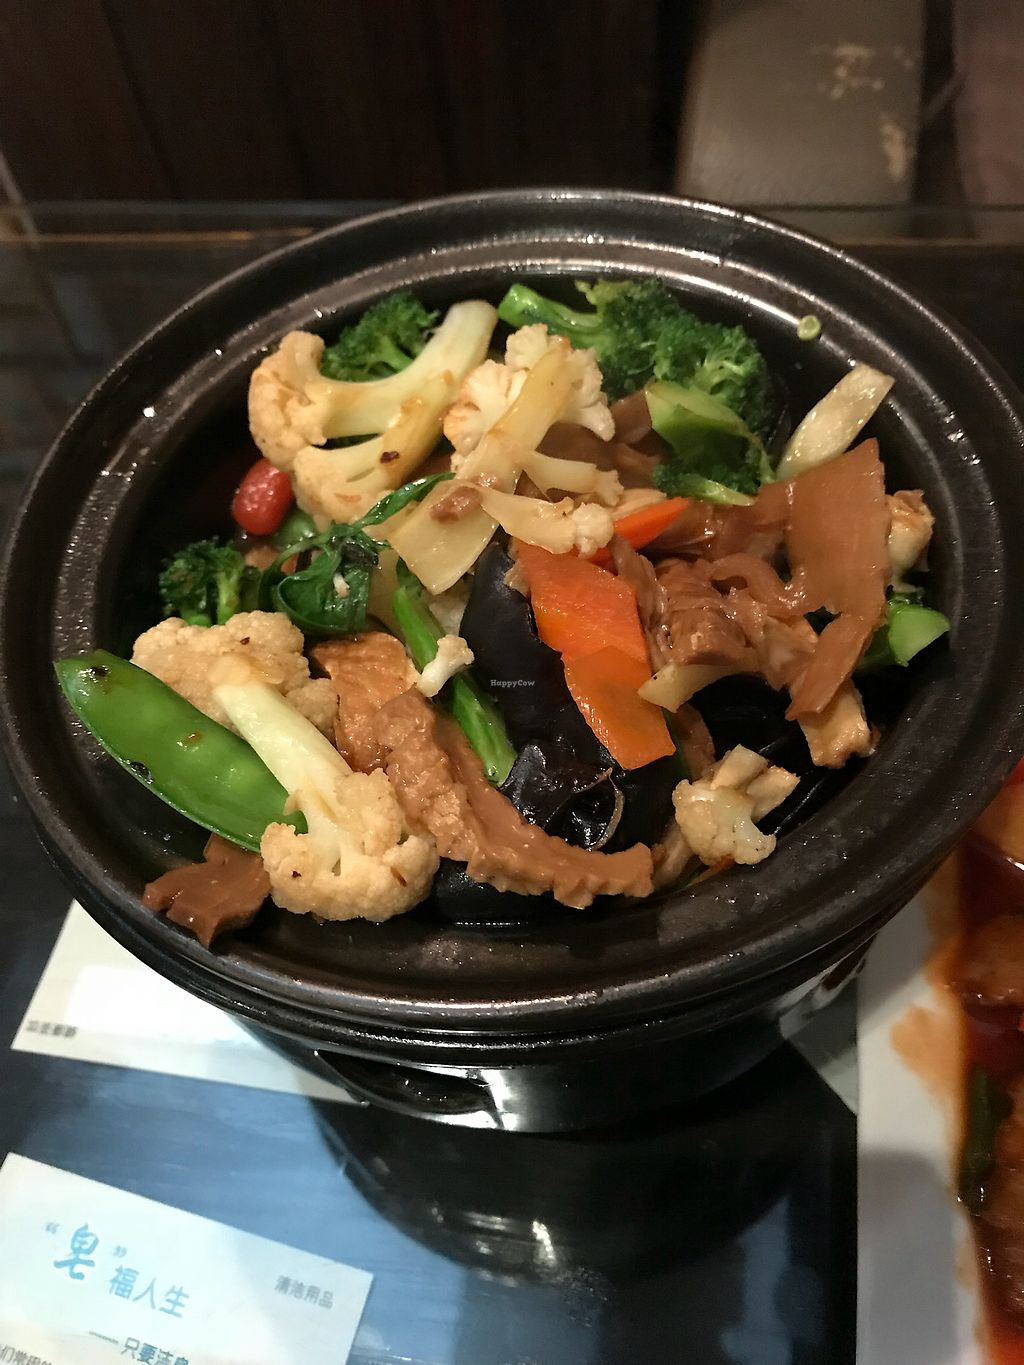 """Photo of Vegetarians Story Restaurant  by <a href=""""/members/profile/etylina"""">etylina</a> <br/>Assorted gluten and vegetables, very good <br/> October 25, 2017  - <a href='/contact/abuse/image/40697/318790'>Report</a>"""